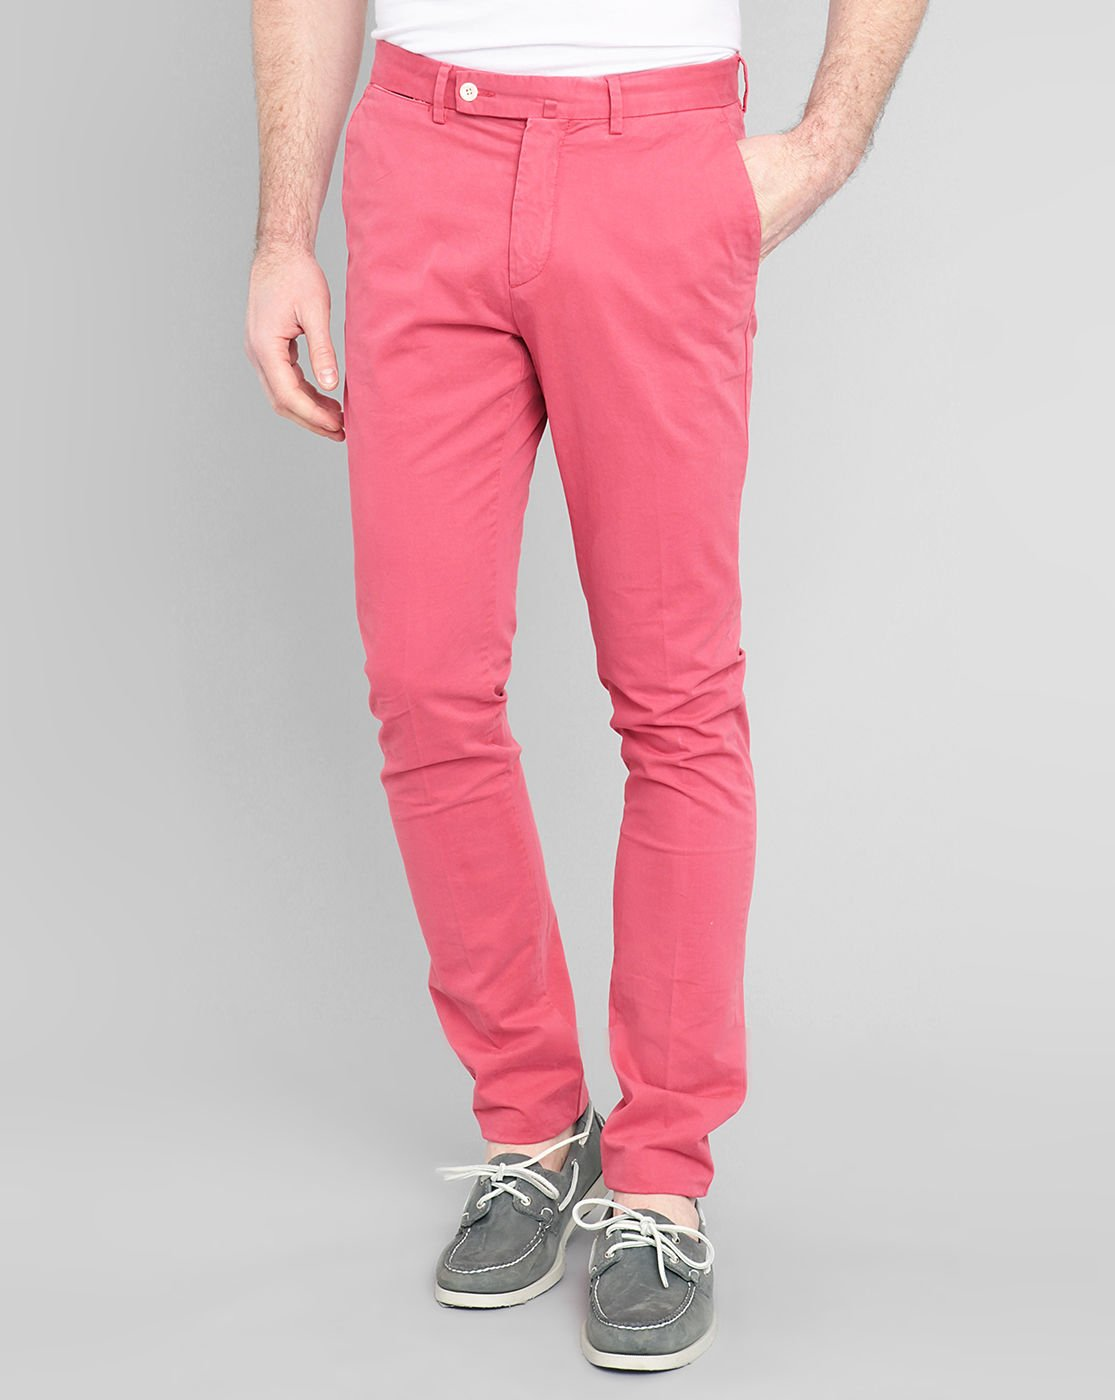 Find great deals on eBay for red chino pants. Shop with confidence.